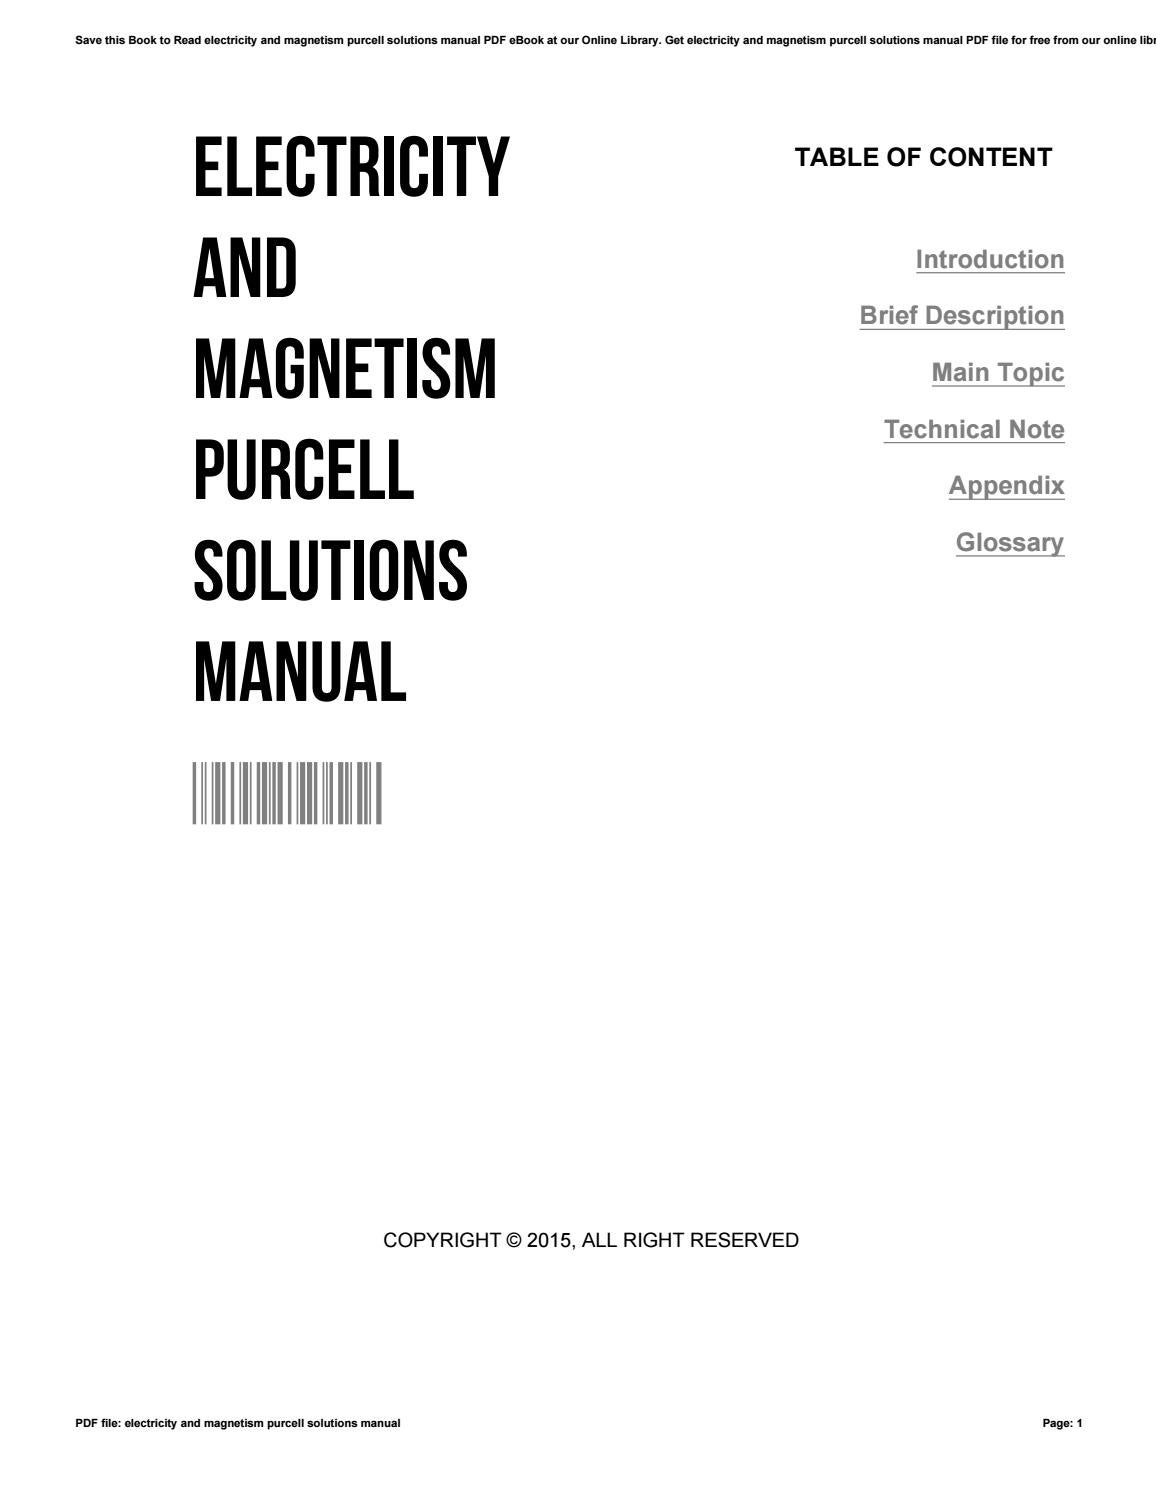 Electricity and magnetism purcell solutions manual by